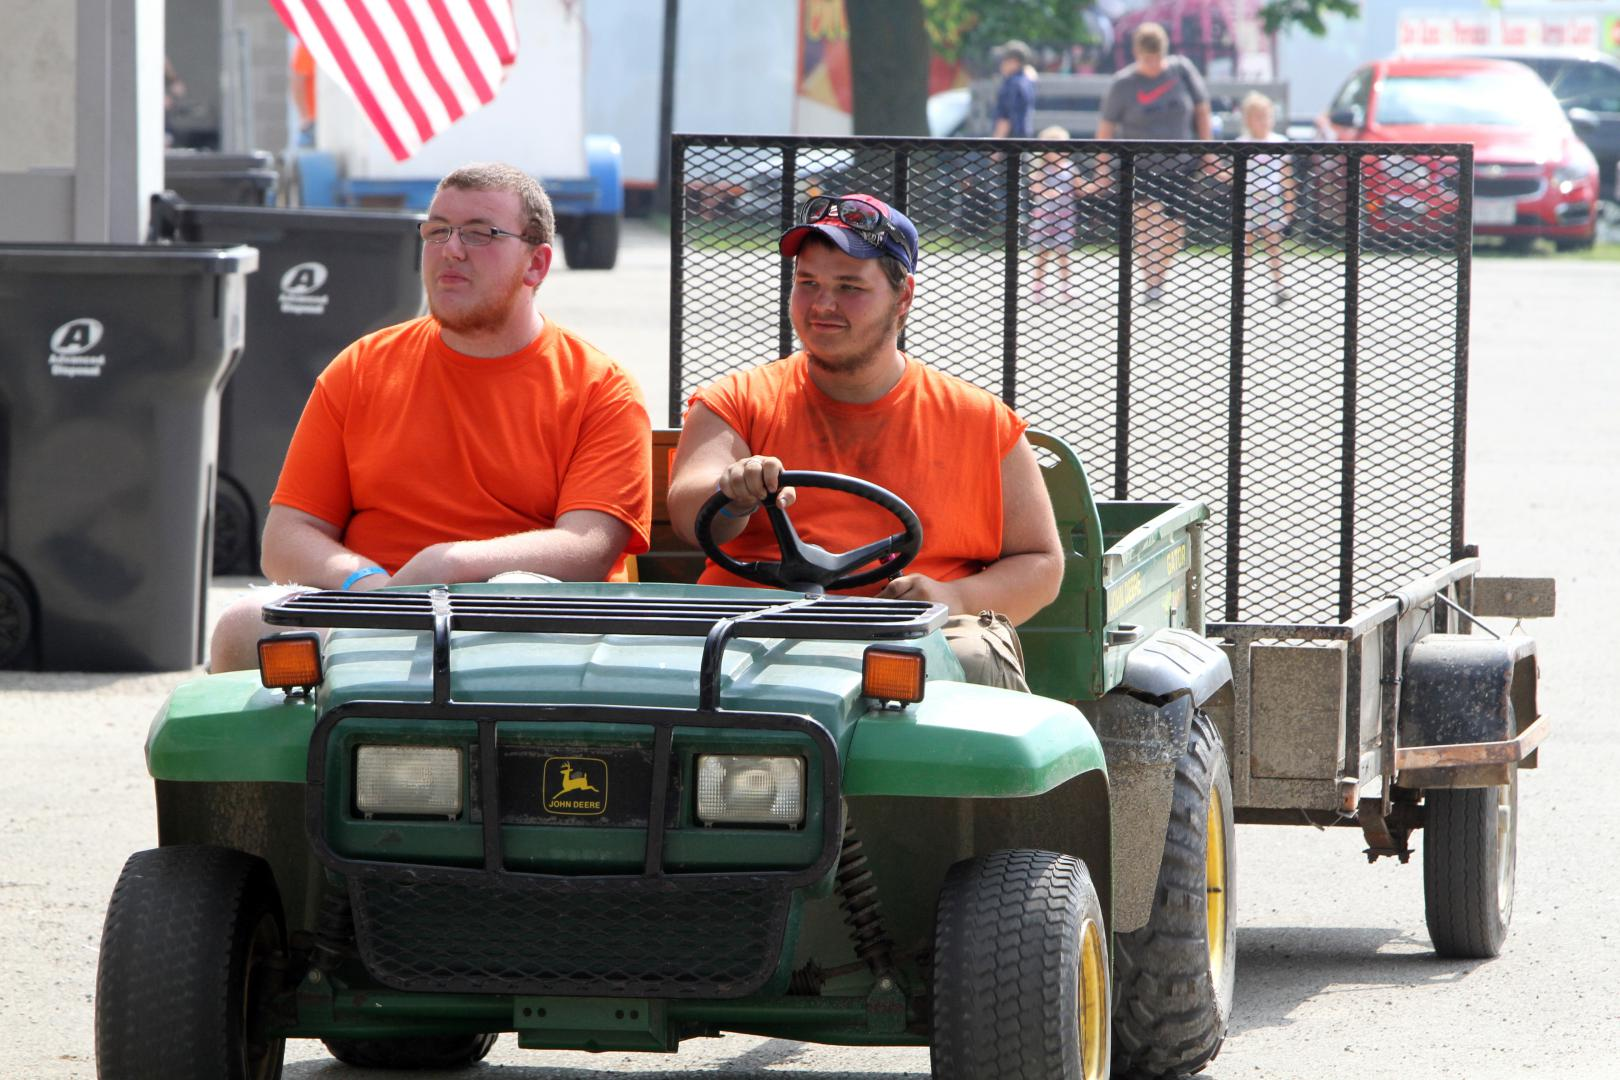 Grounds Crew at Dodge County Fair